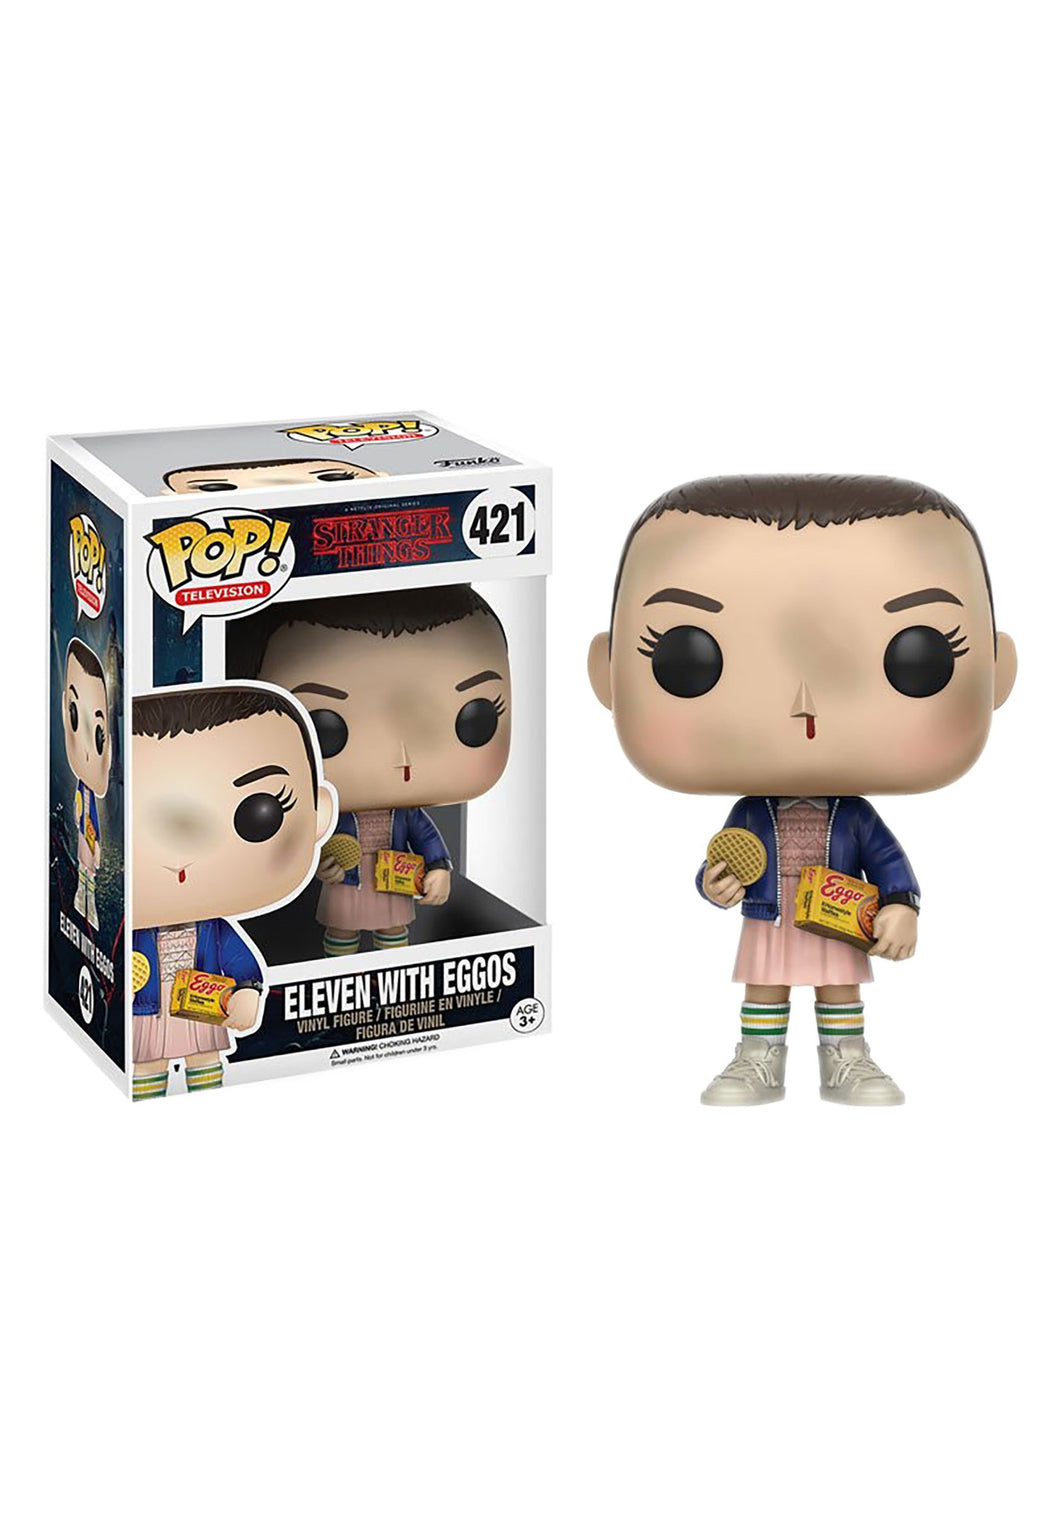 STRANGER THINGS ELEVEN WITH EGGOS FUNKO POP! VINYL FIGURE #421